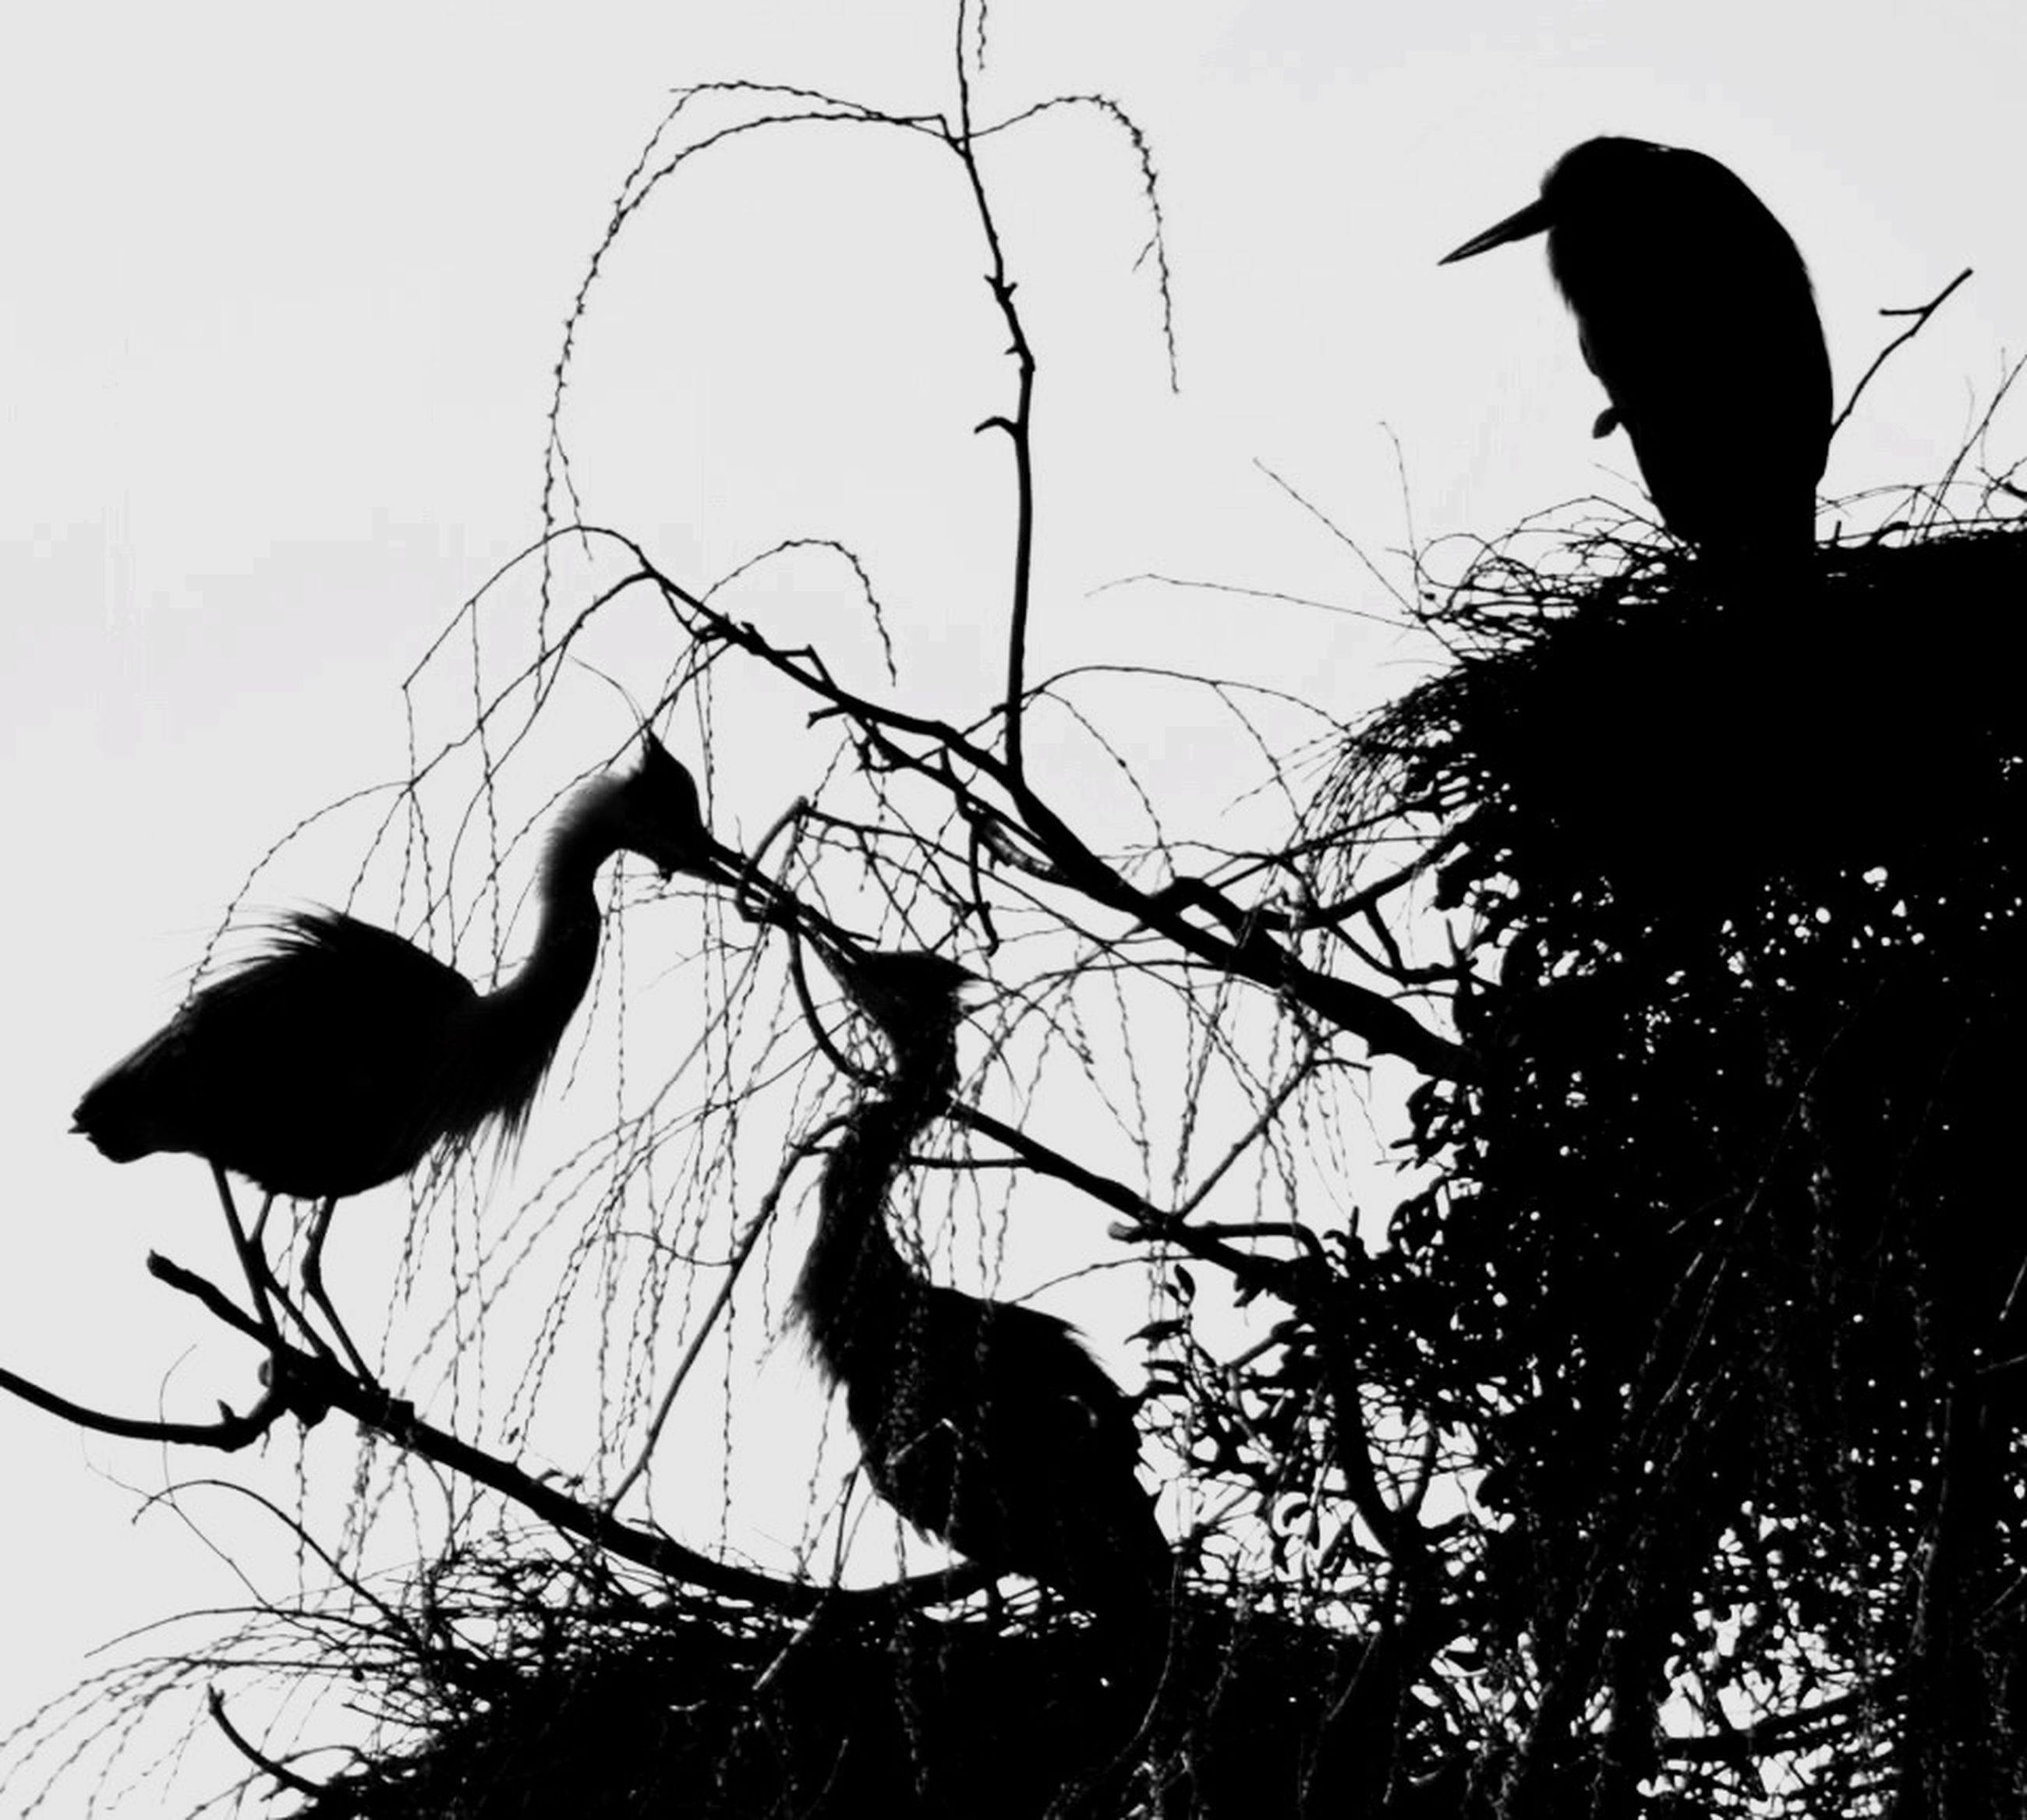 bird, animal themes, animals in the wild, wildlife, low angle view, silhouette, branch, bare tree, tree, perching, one animal, sky, clear sky, two animals, nature, outdoors, avian, dusk, no people, tranquility